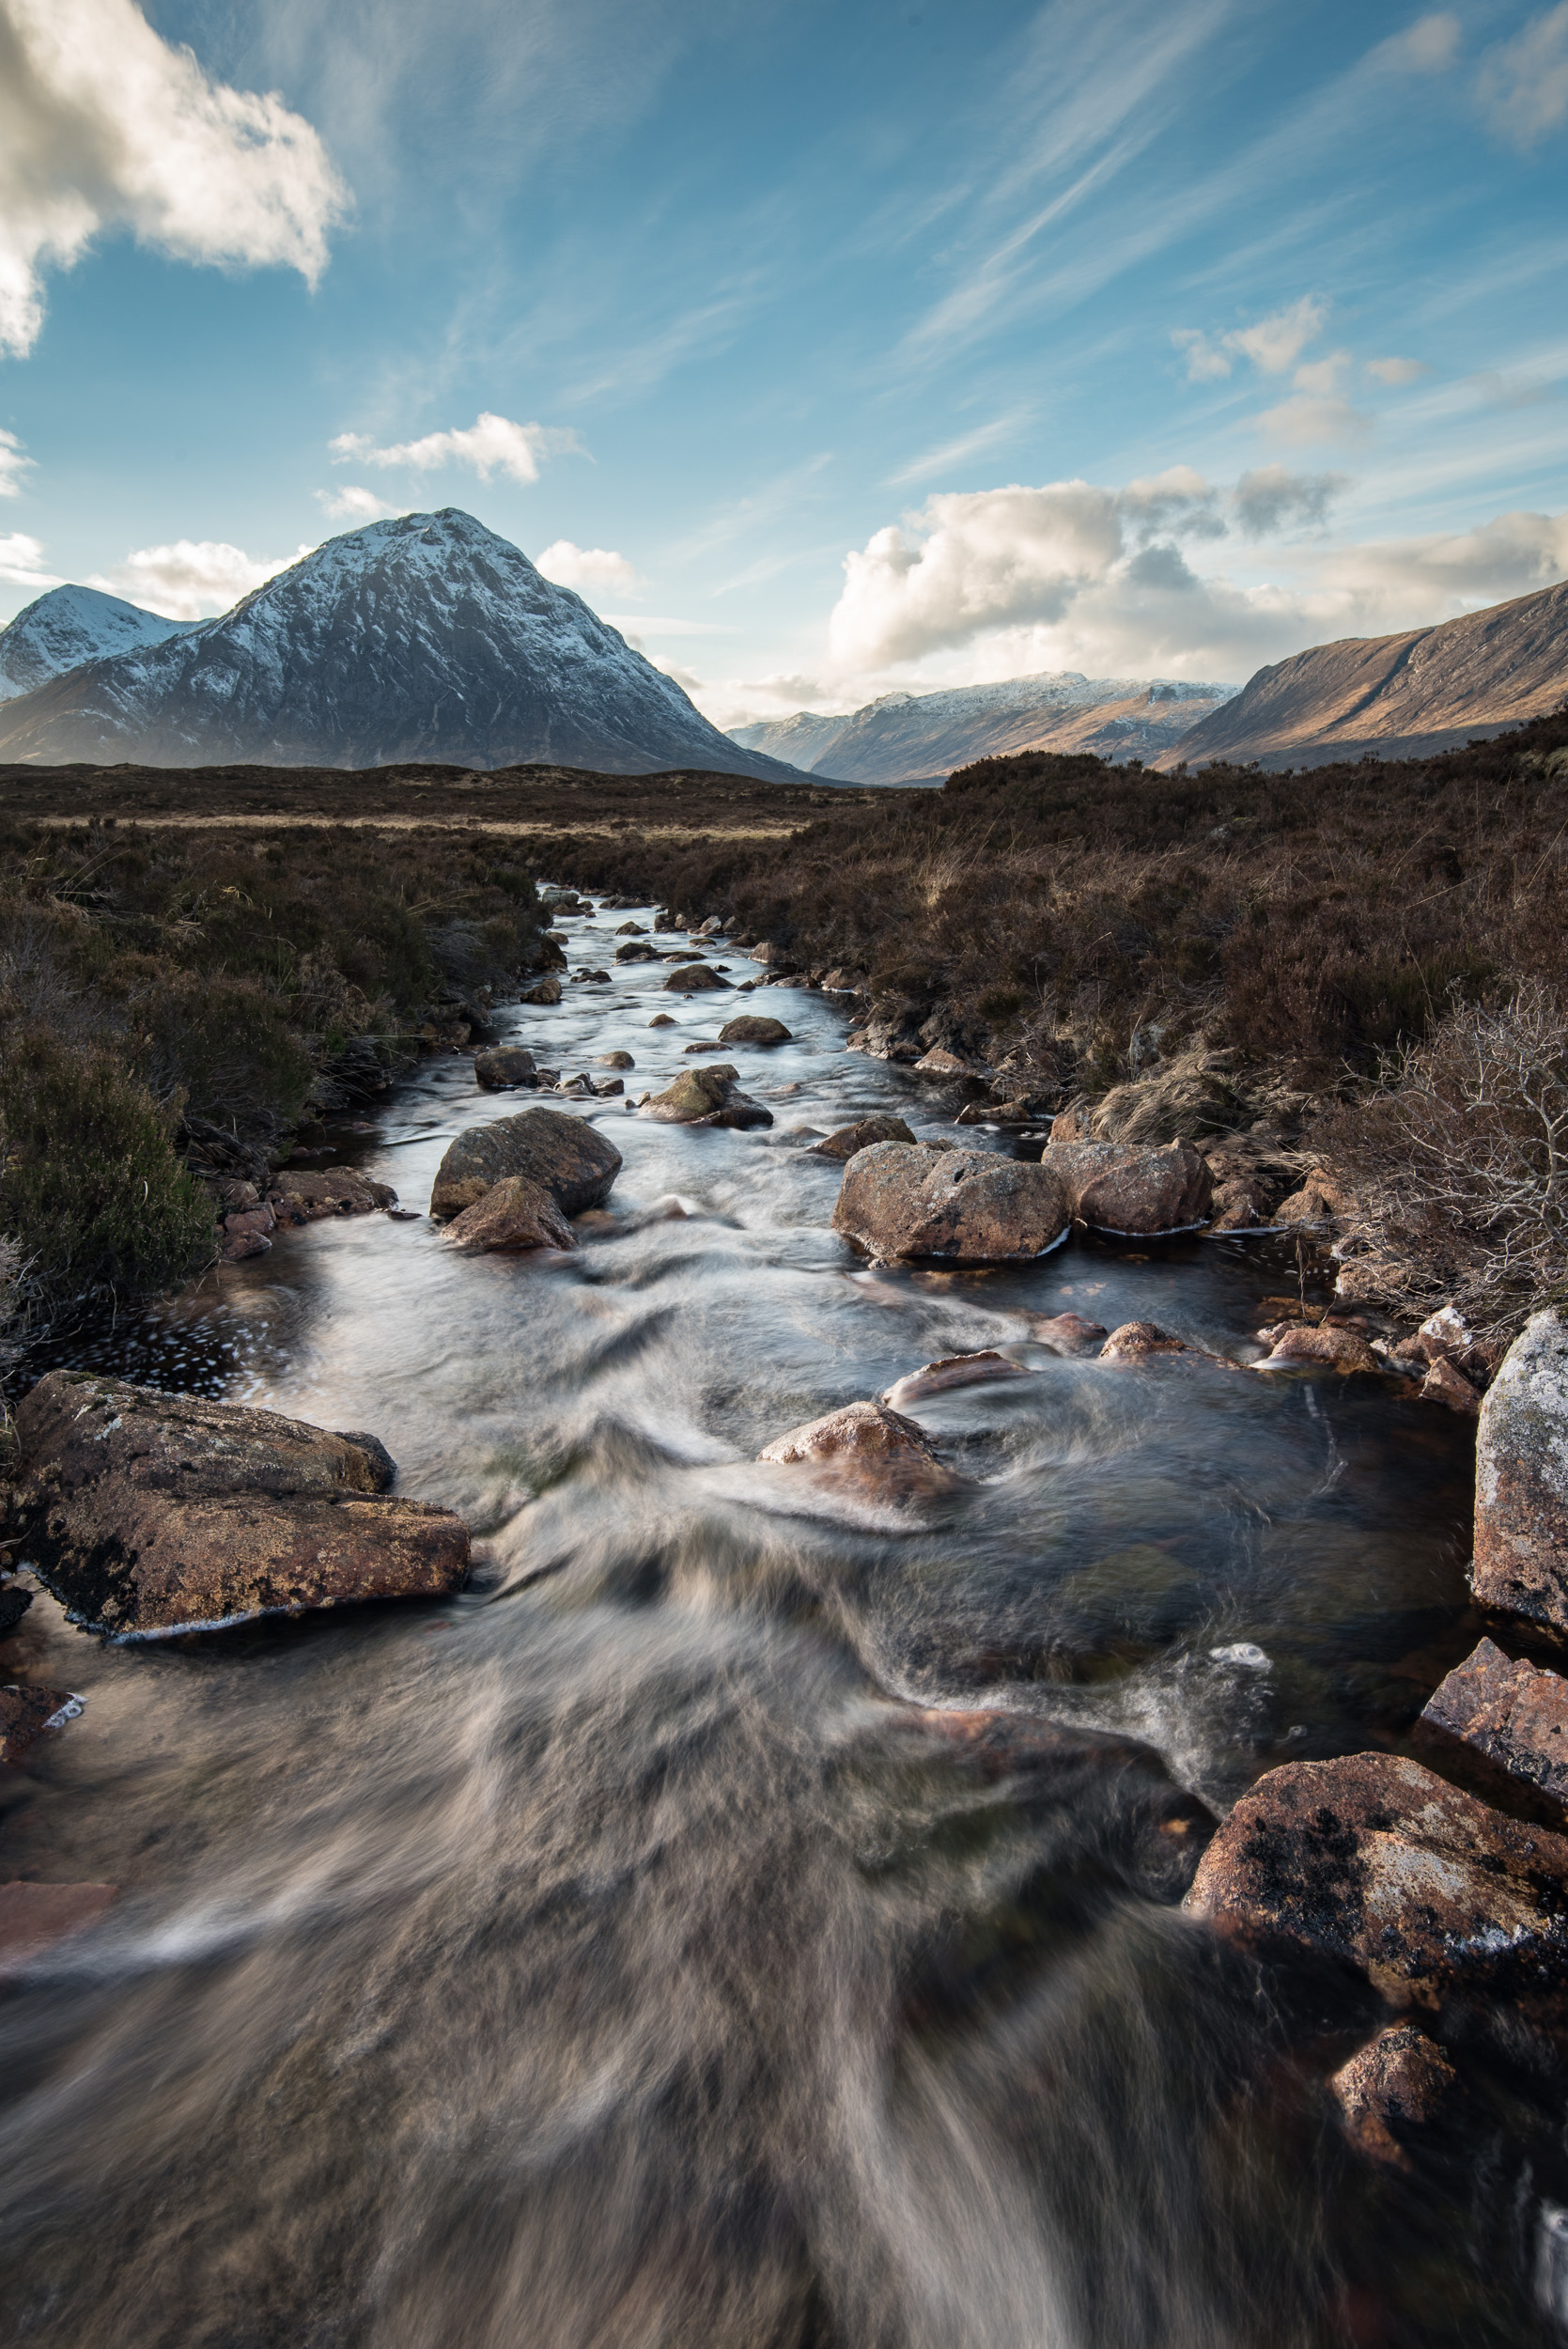 20170301-Downstream from Stob Dearg.jpg